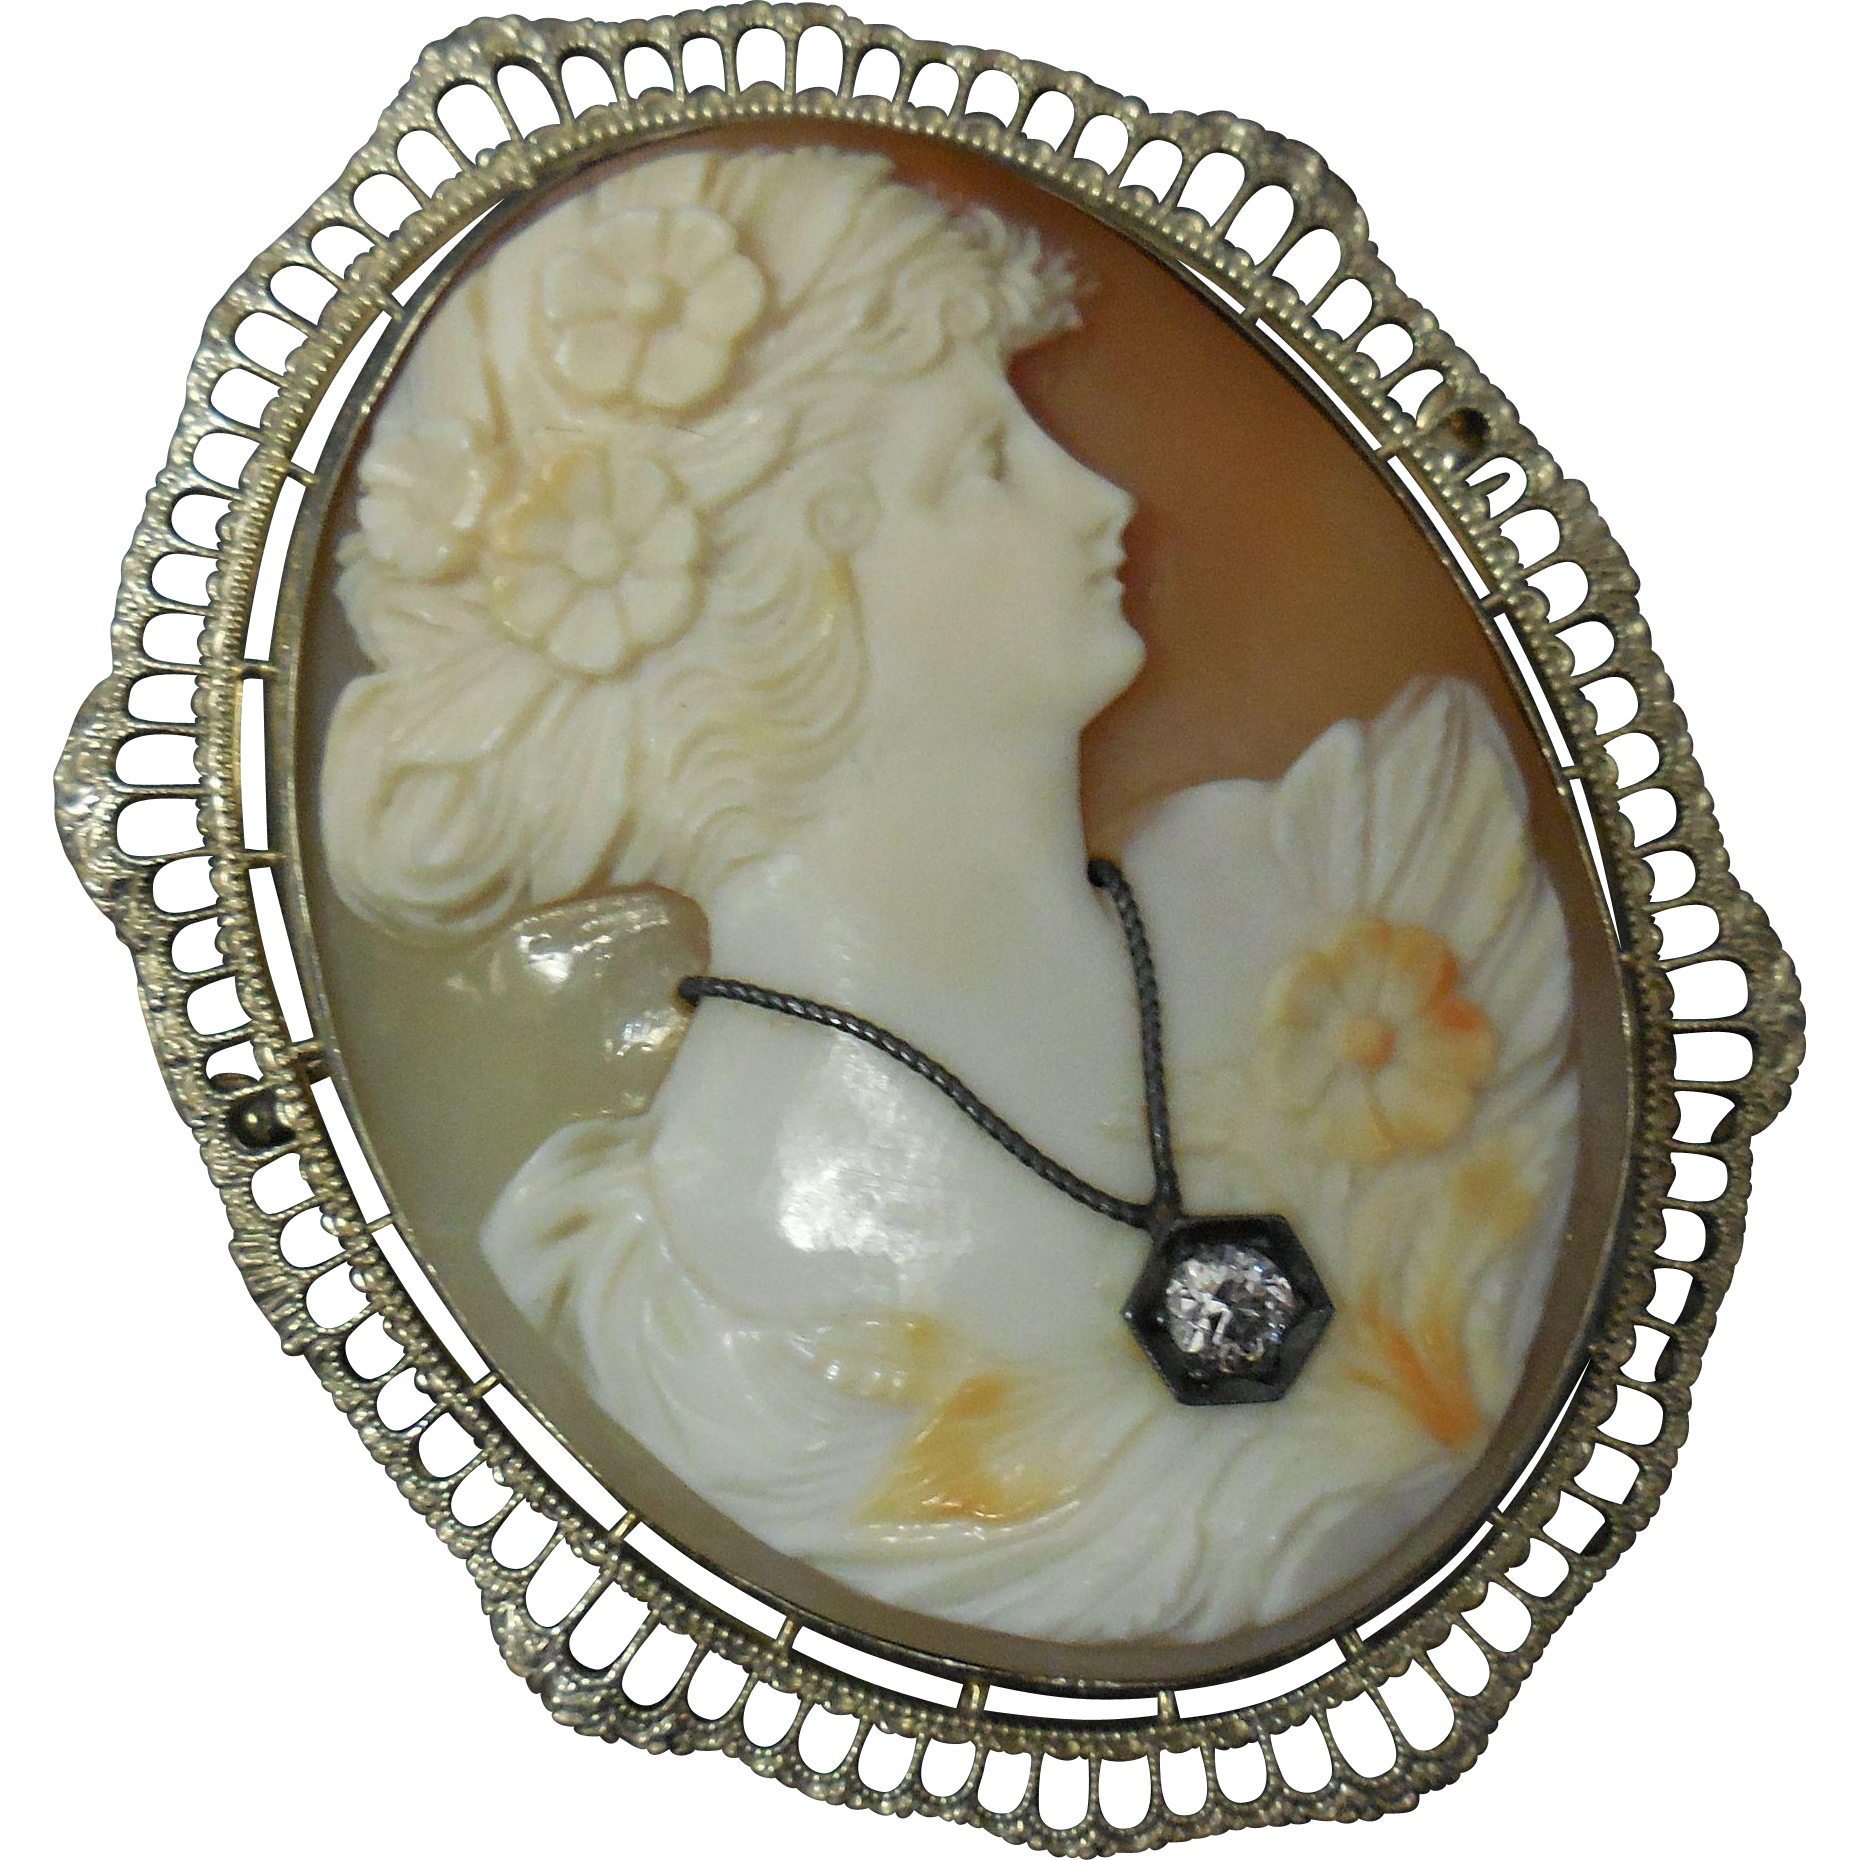 Early 20th C Shell Cameo 14 K White Gold Filigree Brooch